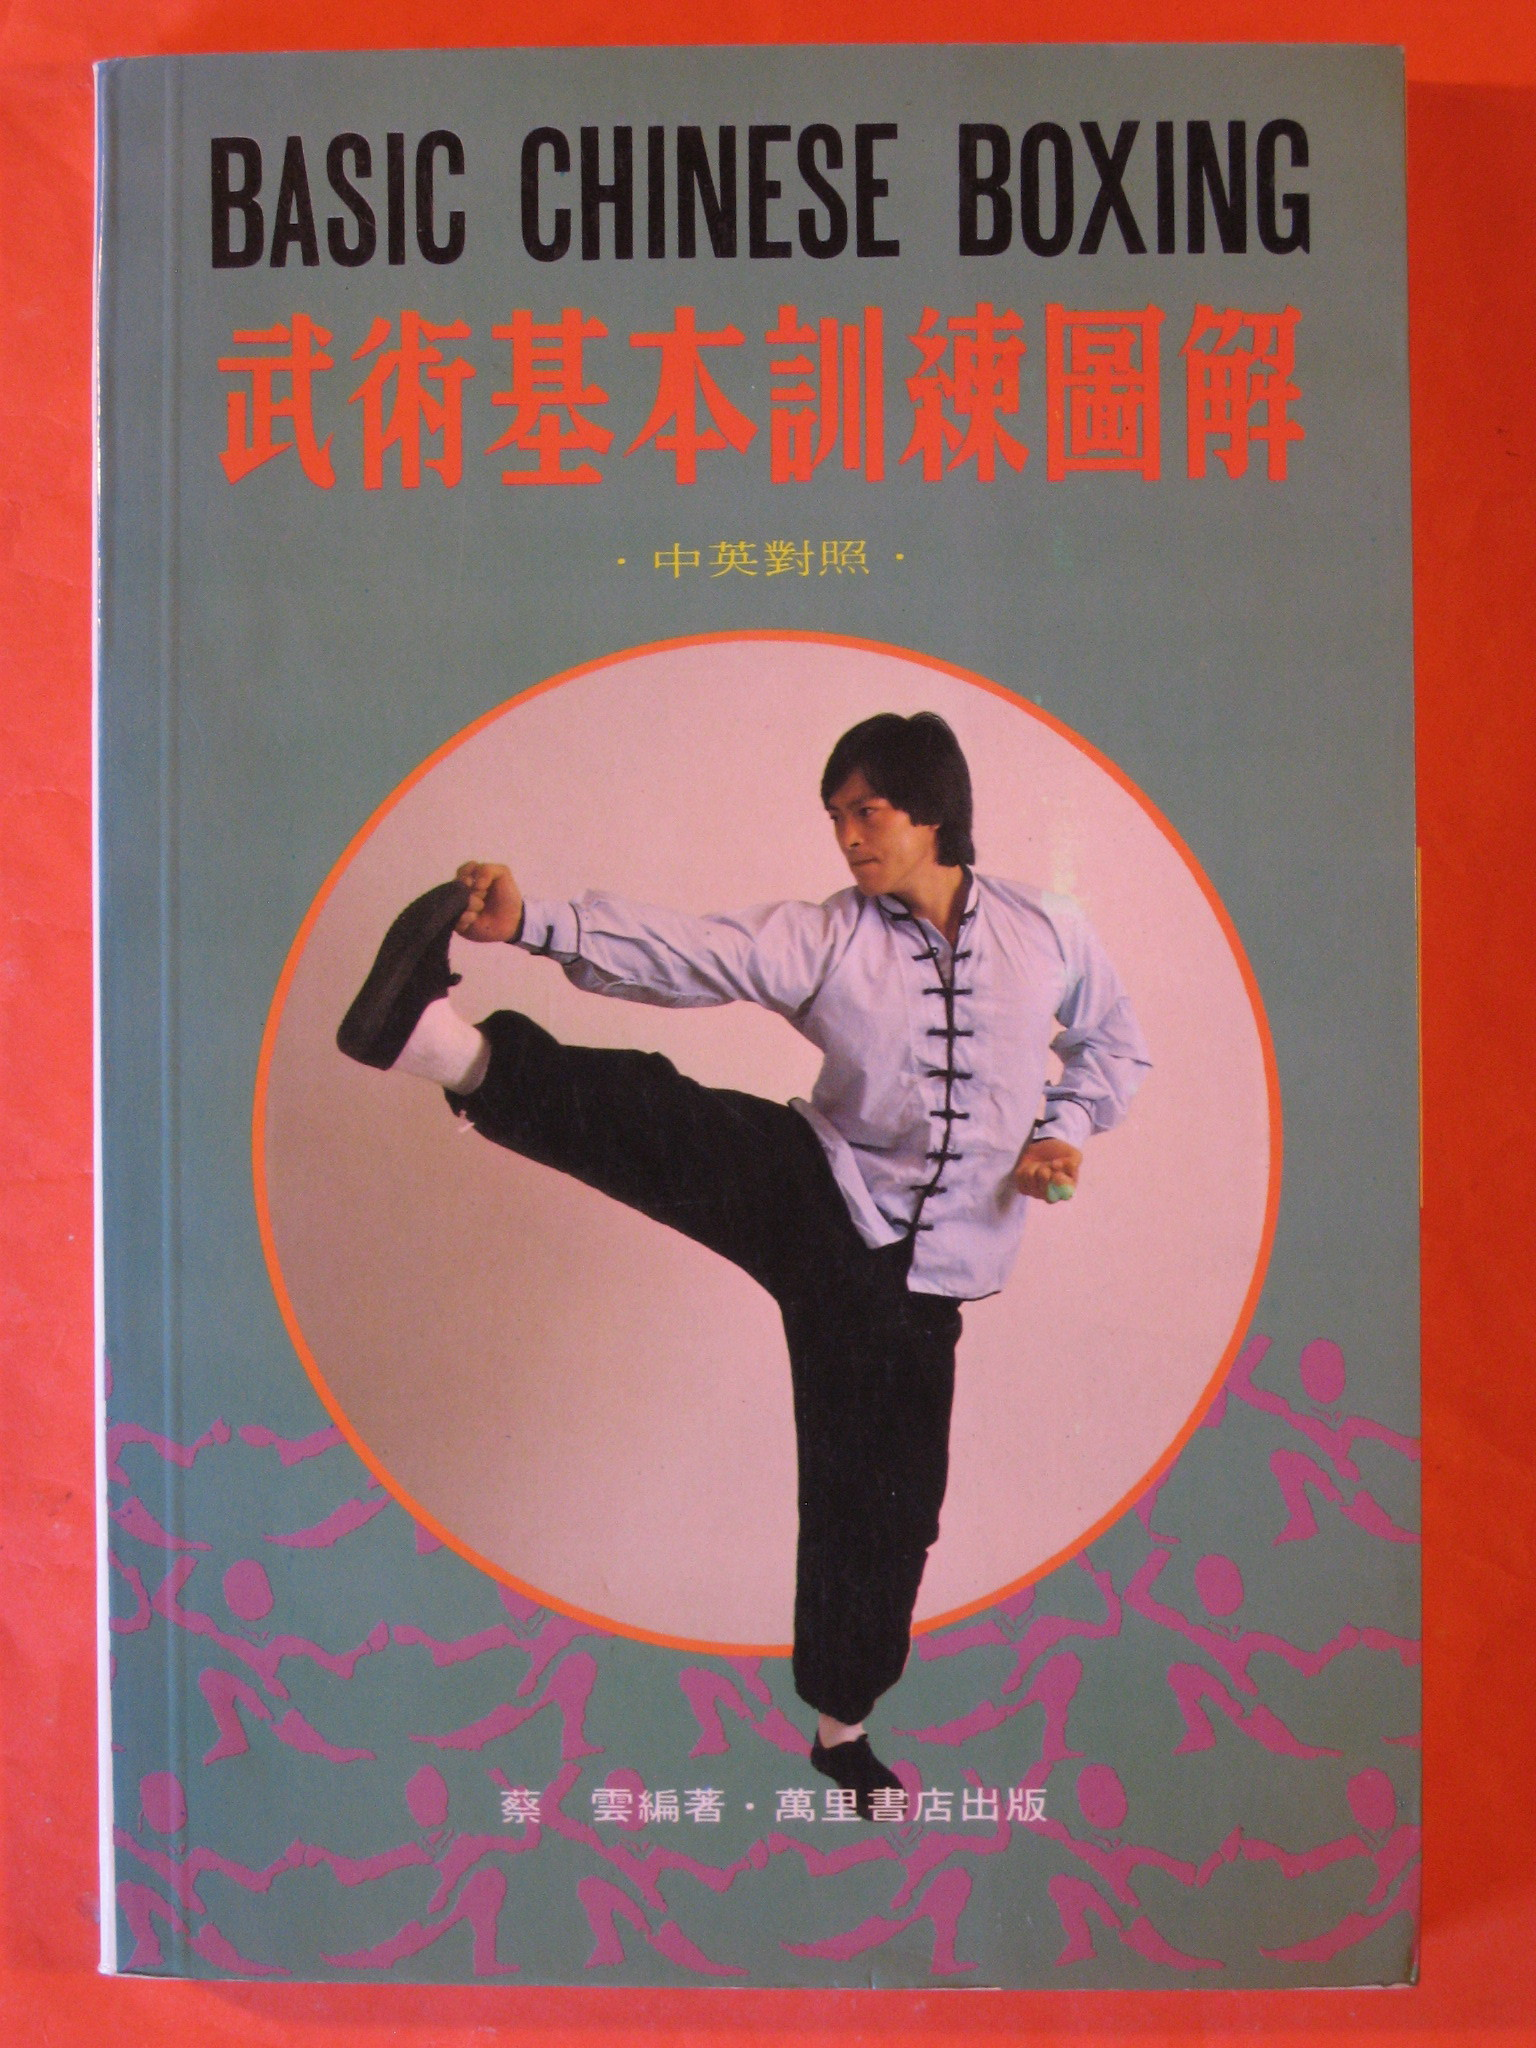 Basic Chinese Boxing, Yun, Cai